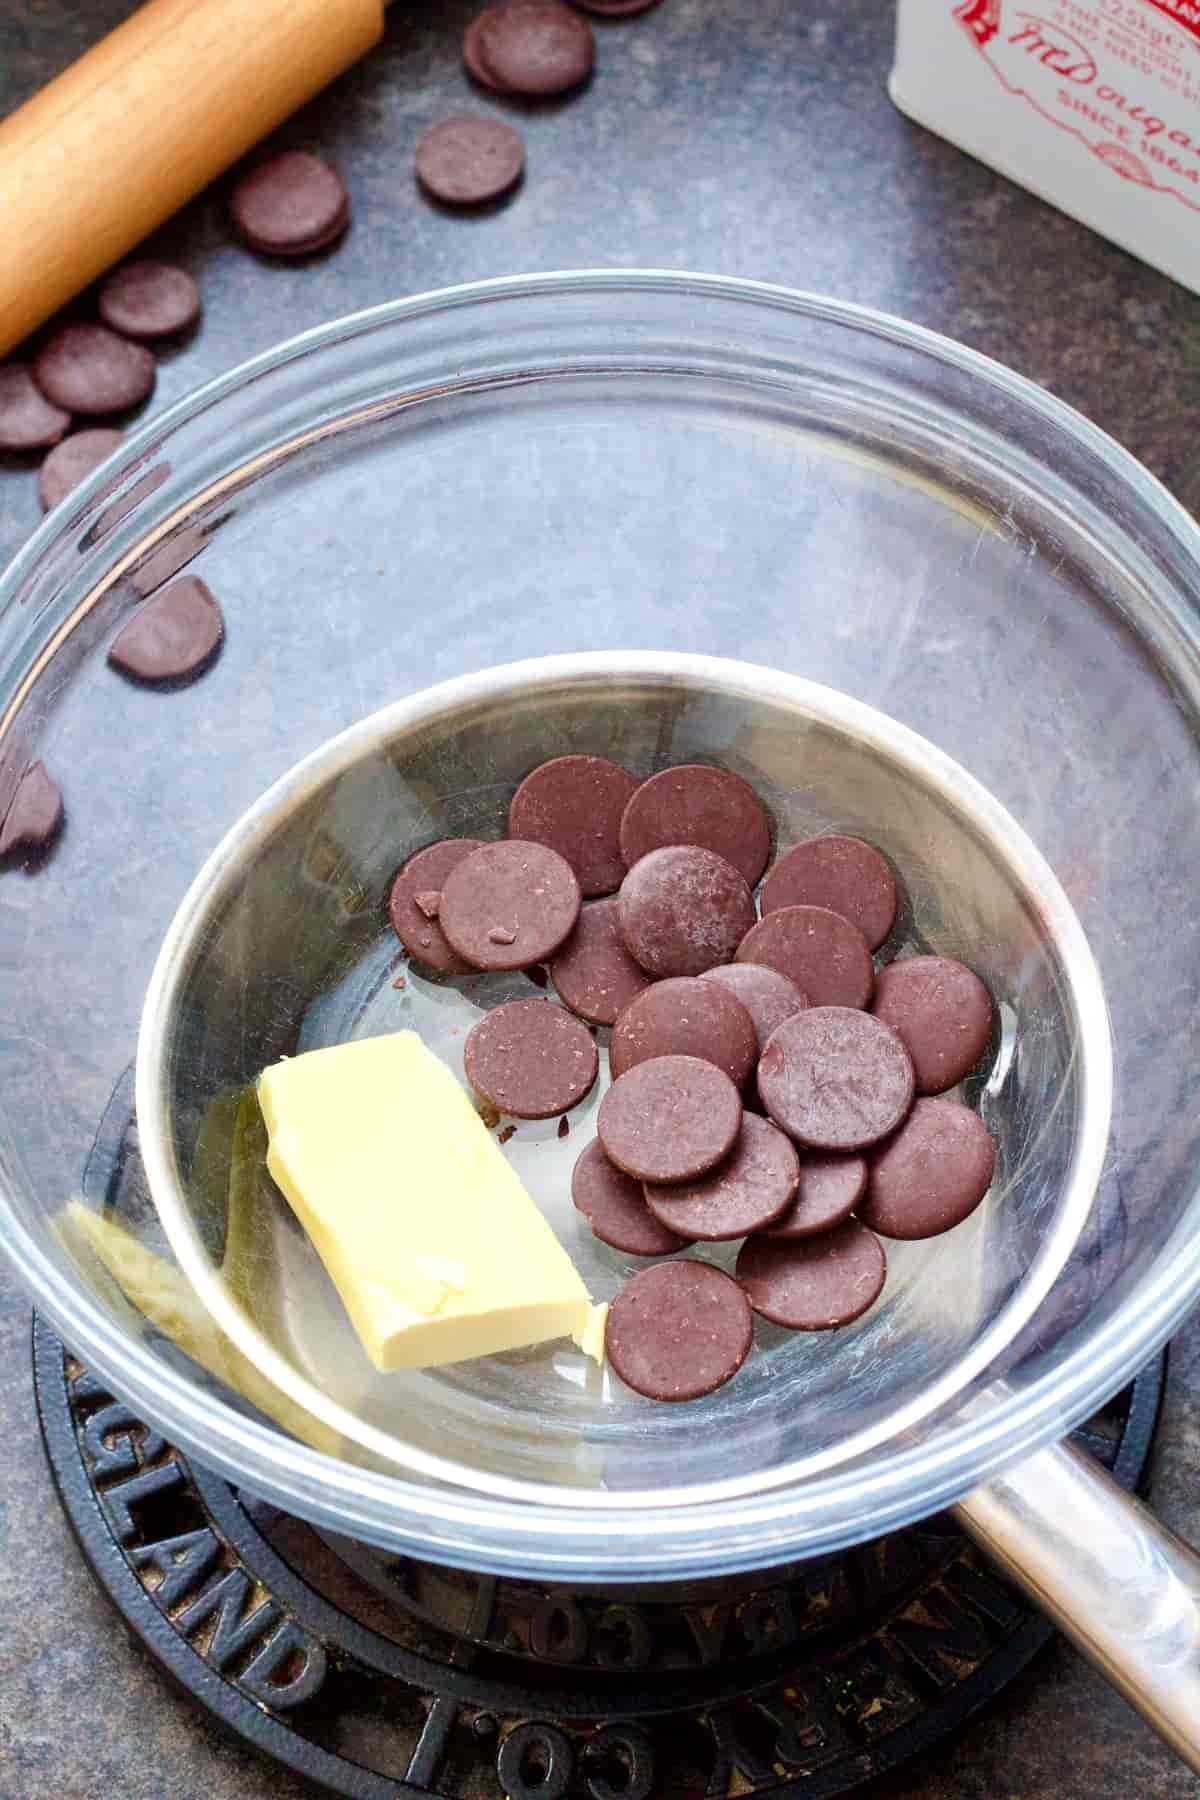 Chocolate buttons & vegan butter in a bowl over a pan.